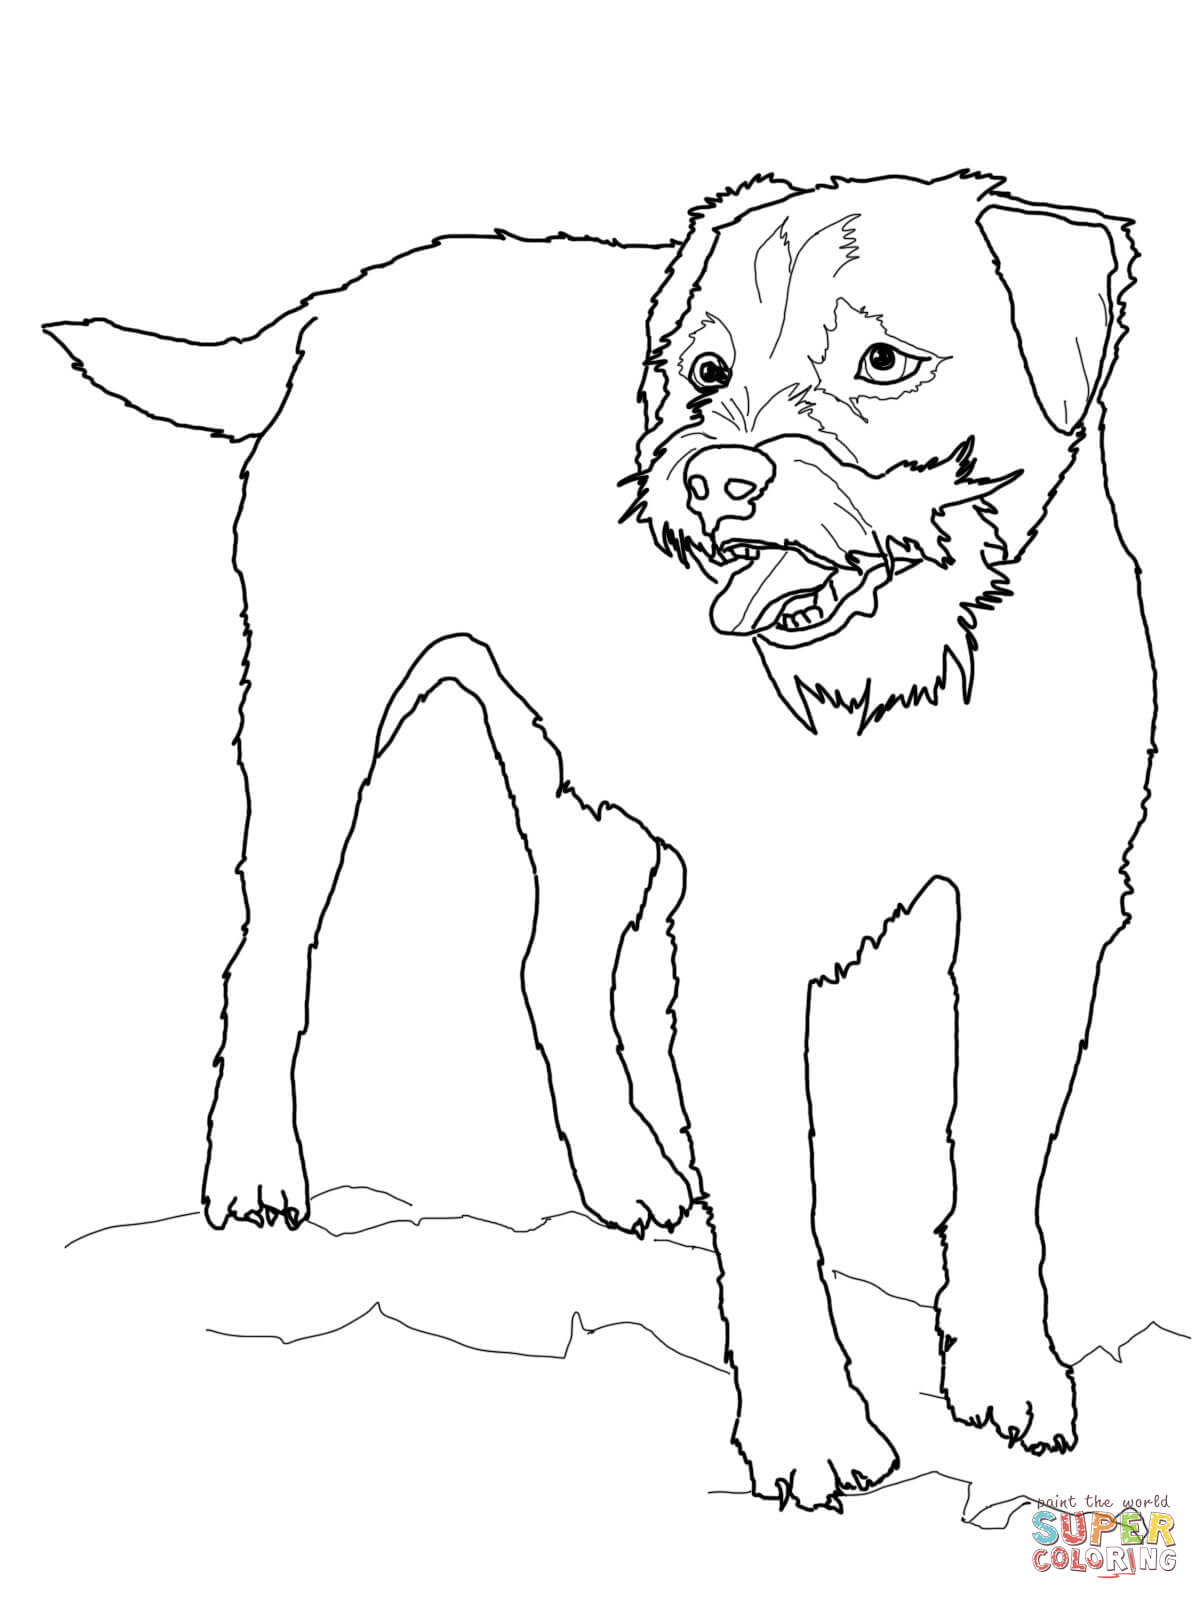 1200x1600 Border Terrier Coloring Page Free Printable Coloring Pages